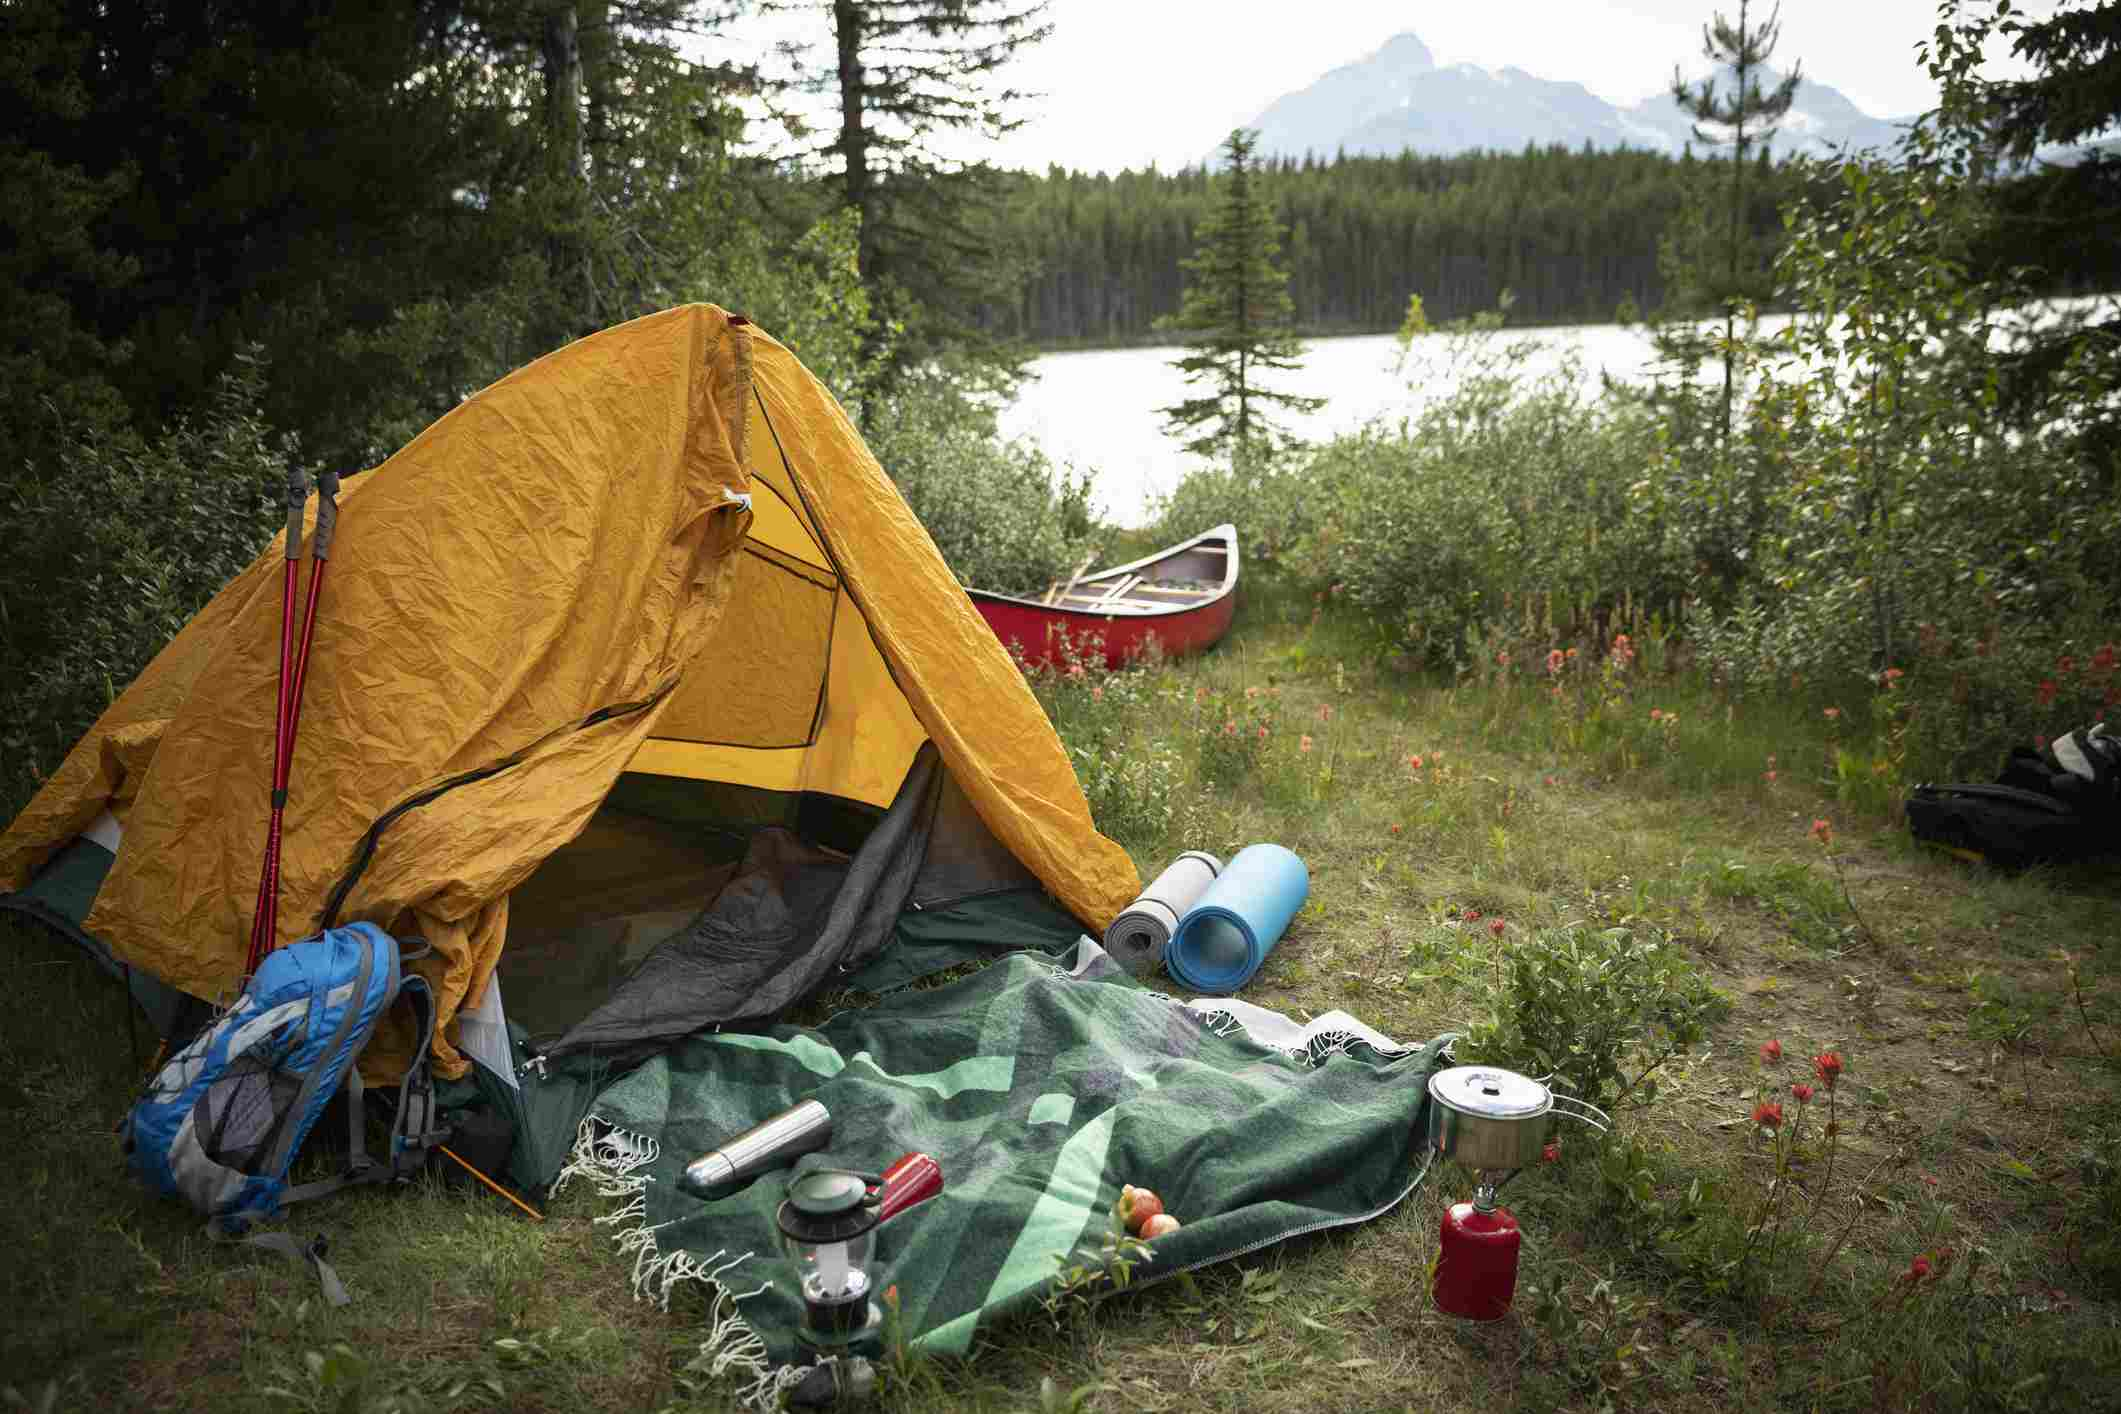 Best Solo Tents For Backpacking